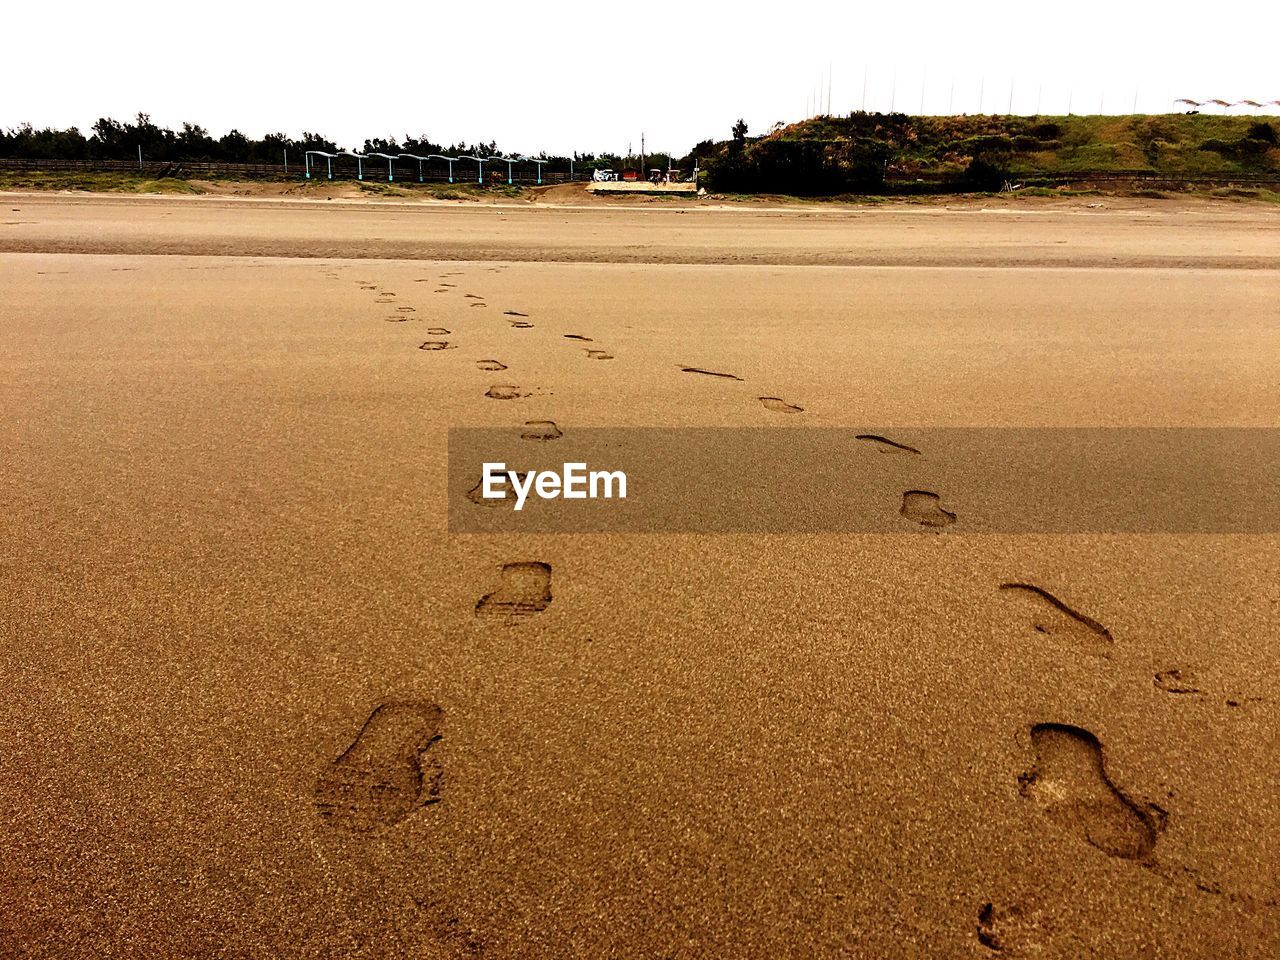 footprint, beach, sand, paw print, day, outdoors, no people, tranquility, nature, beauty in nature, sky